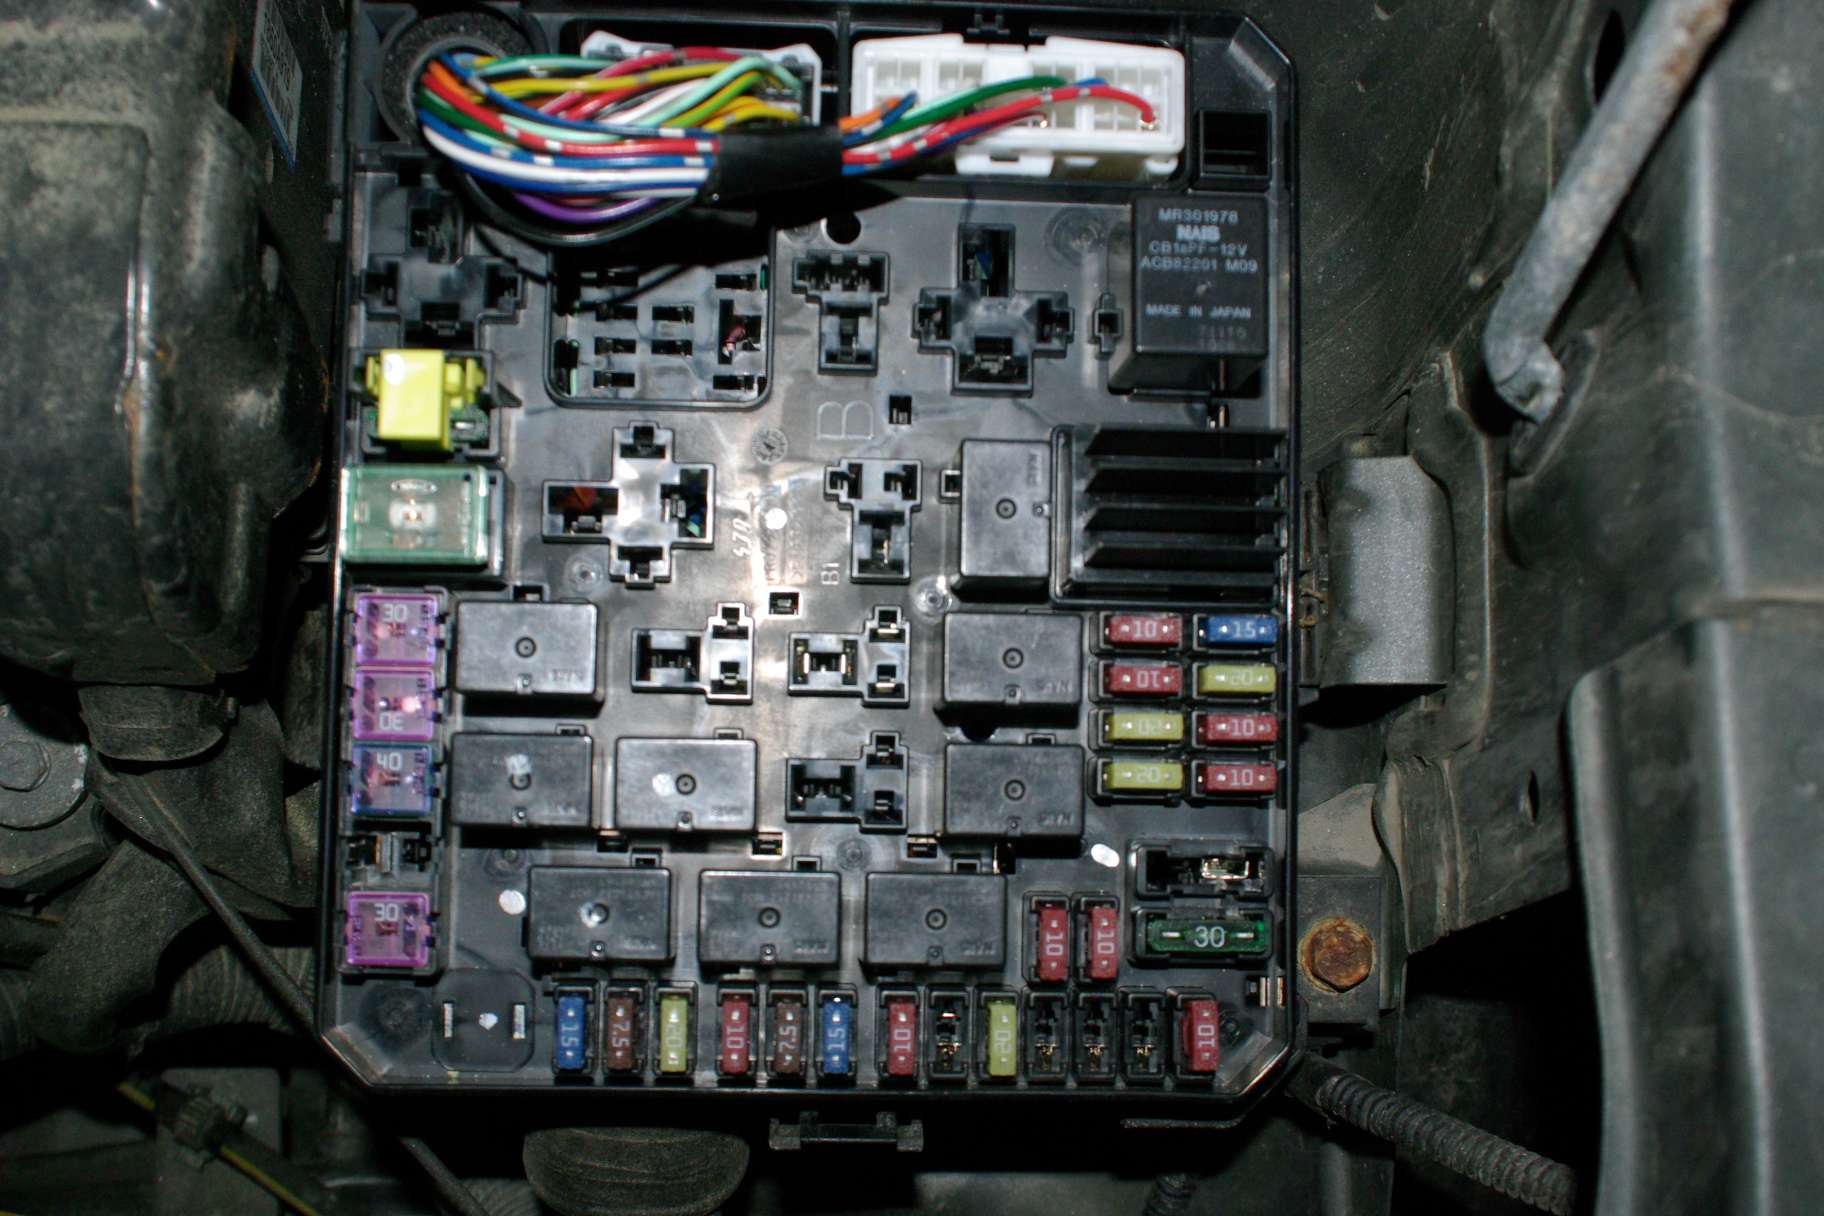 Eclipse Fuse Box Diagram Wiring Schematic Mitsubishi Outlander Xls I Was Pulling Fuses Trying To Locate